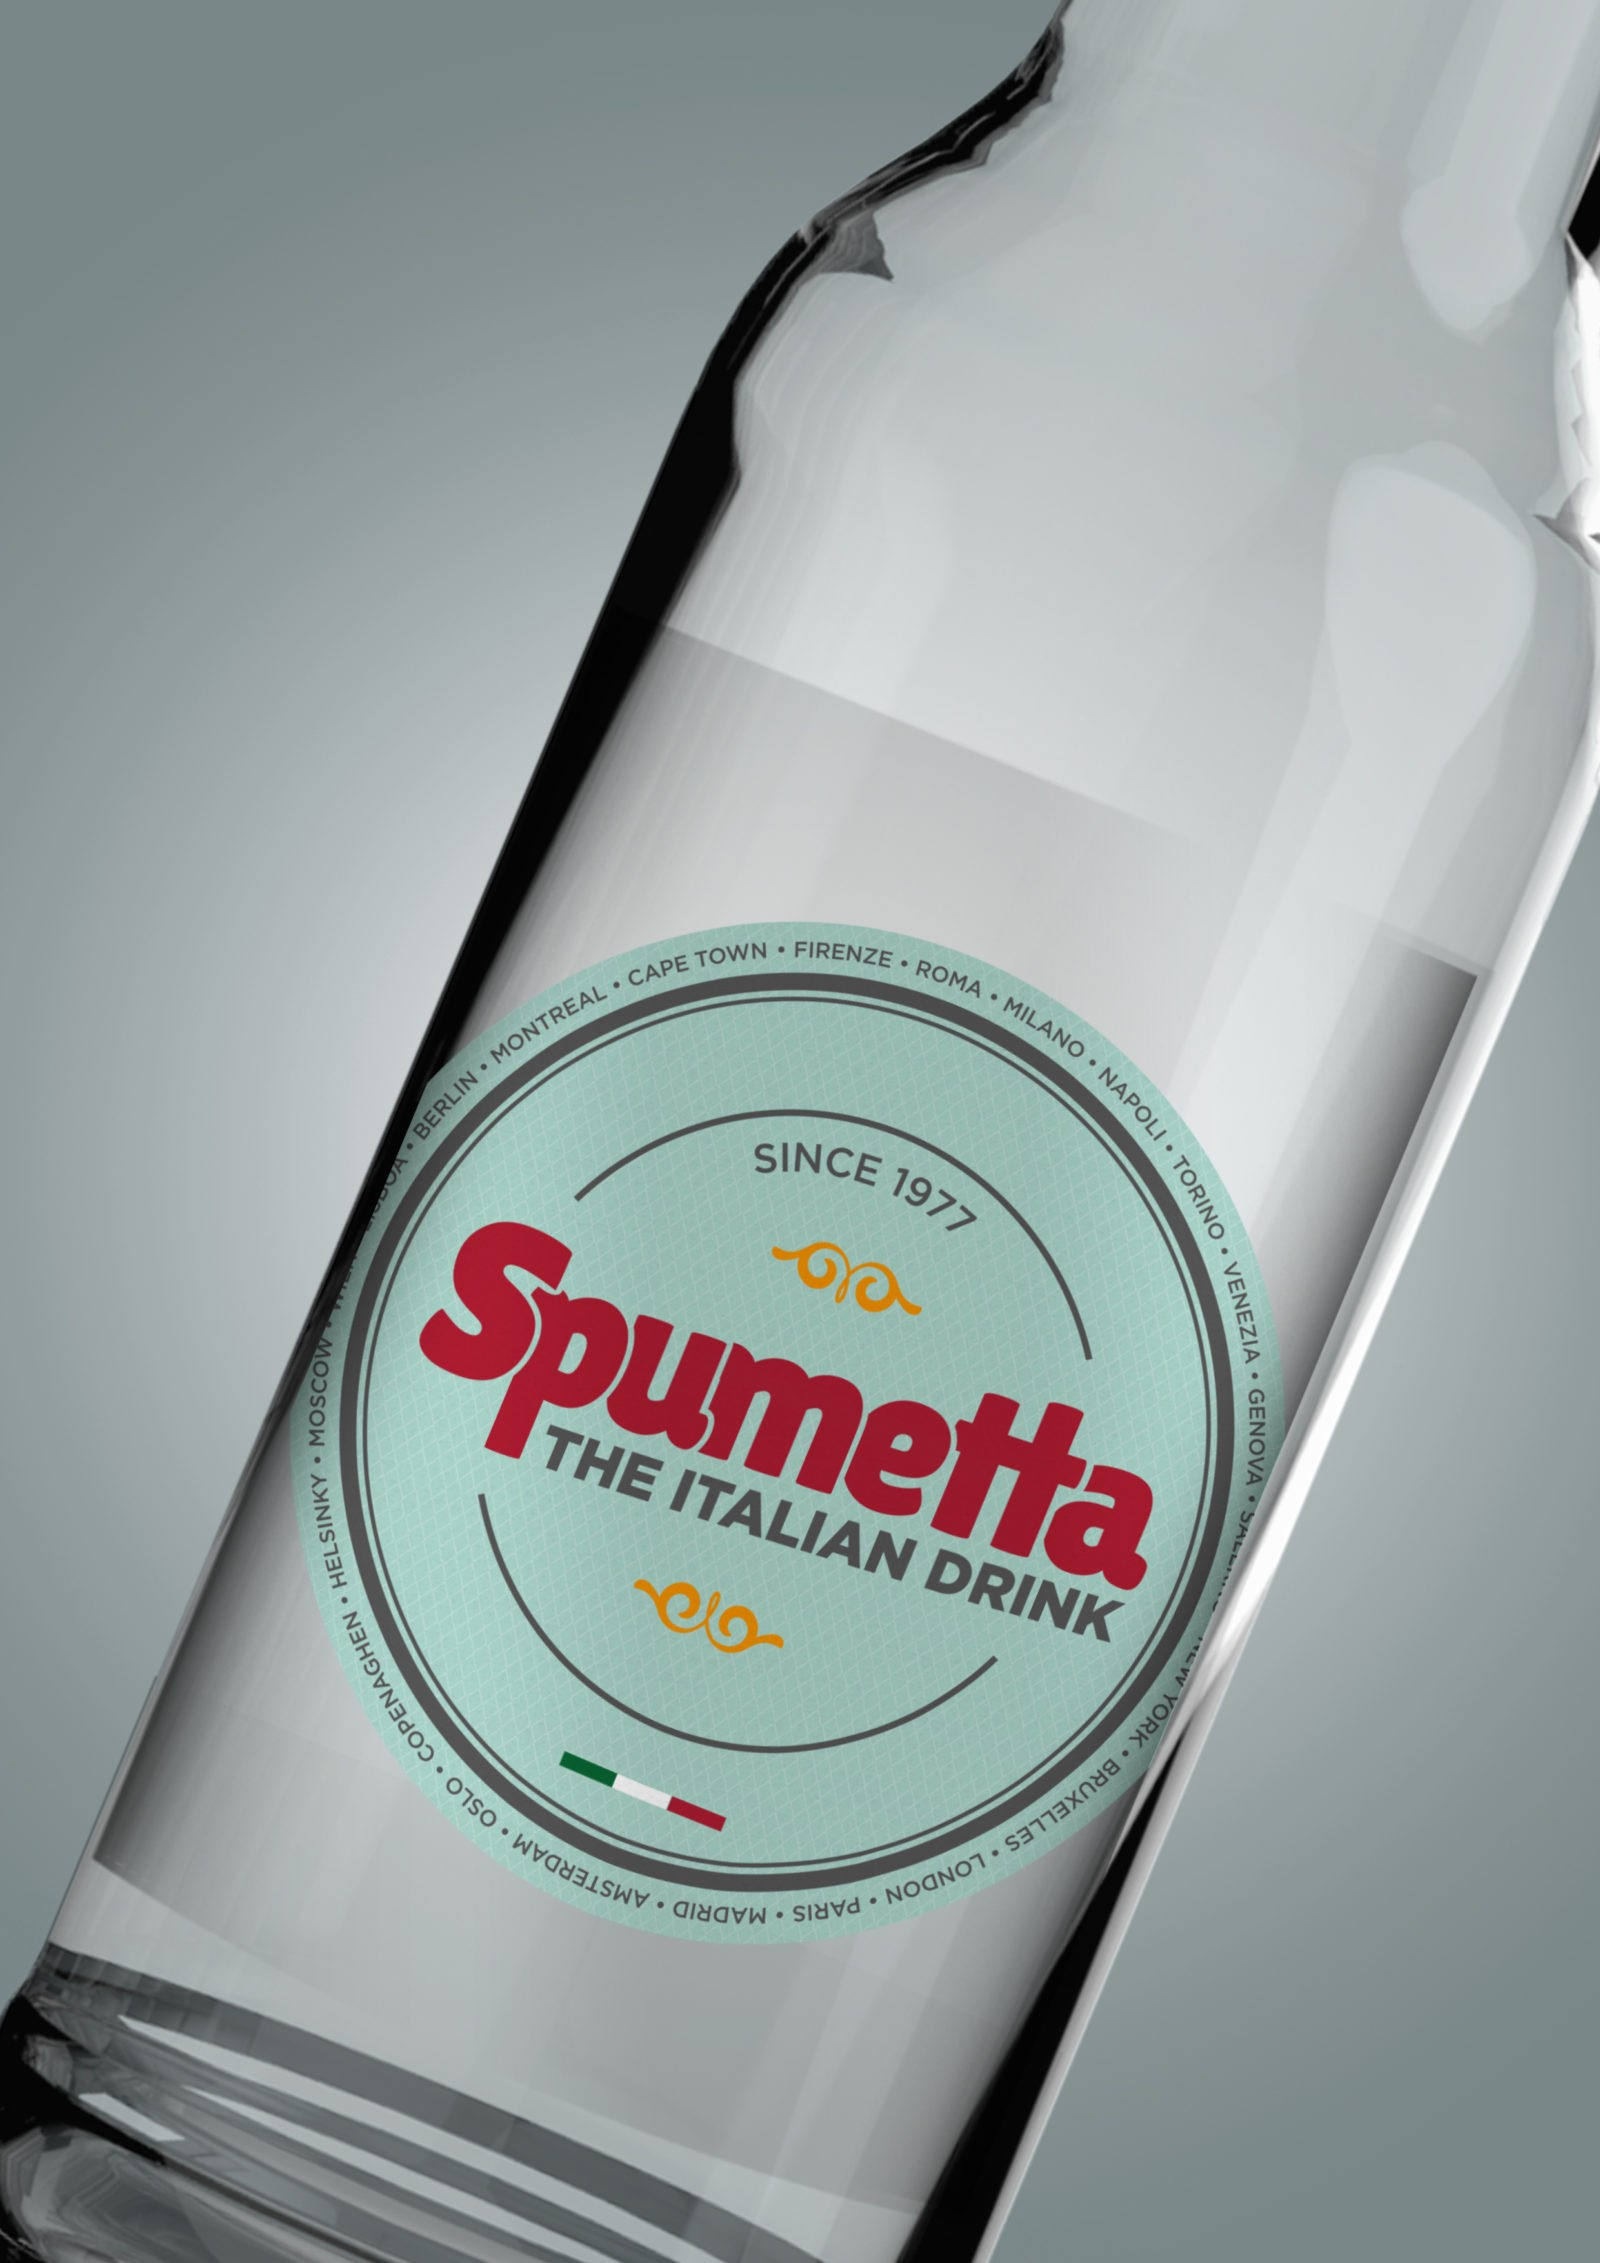 Spumetta label